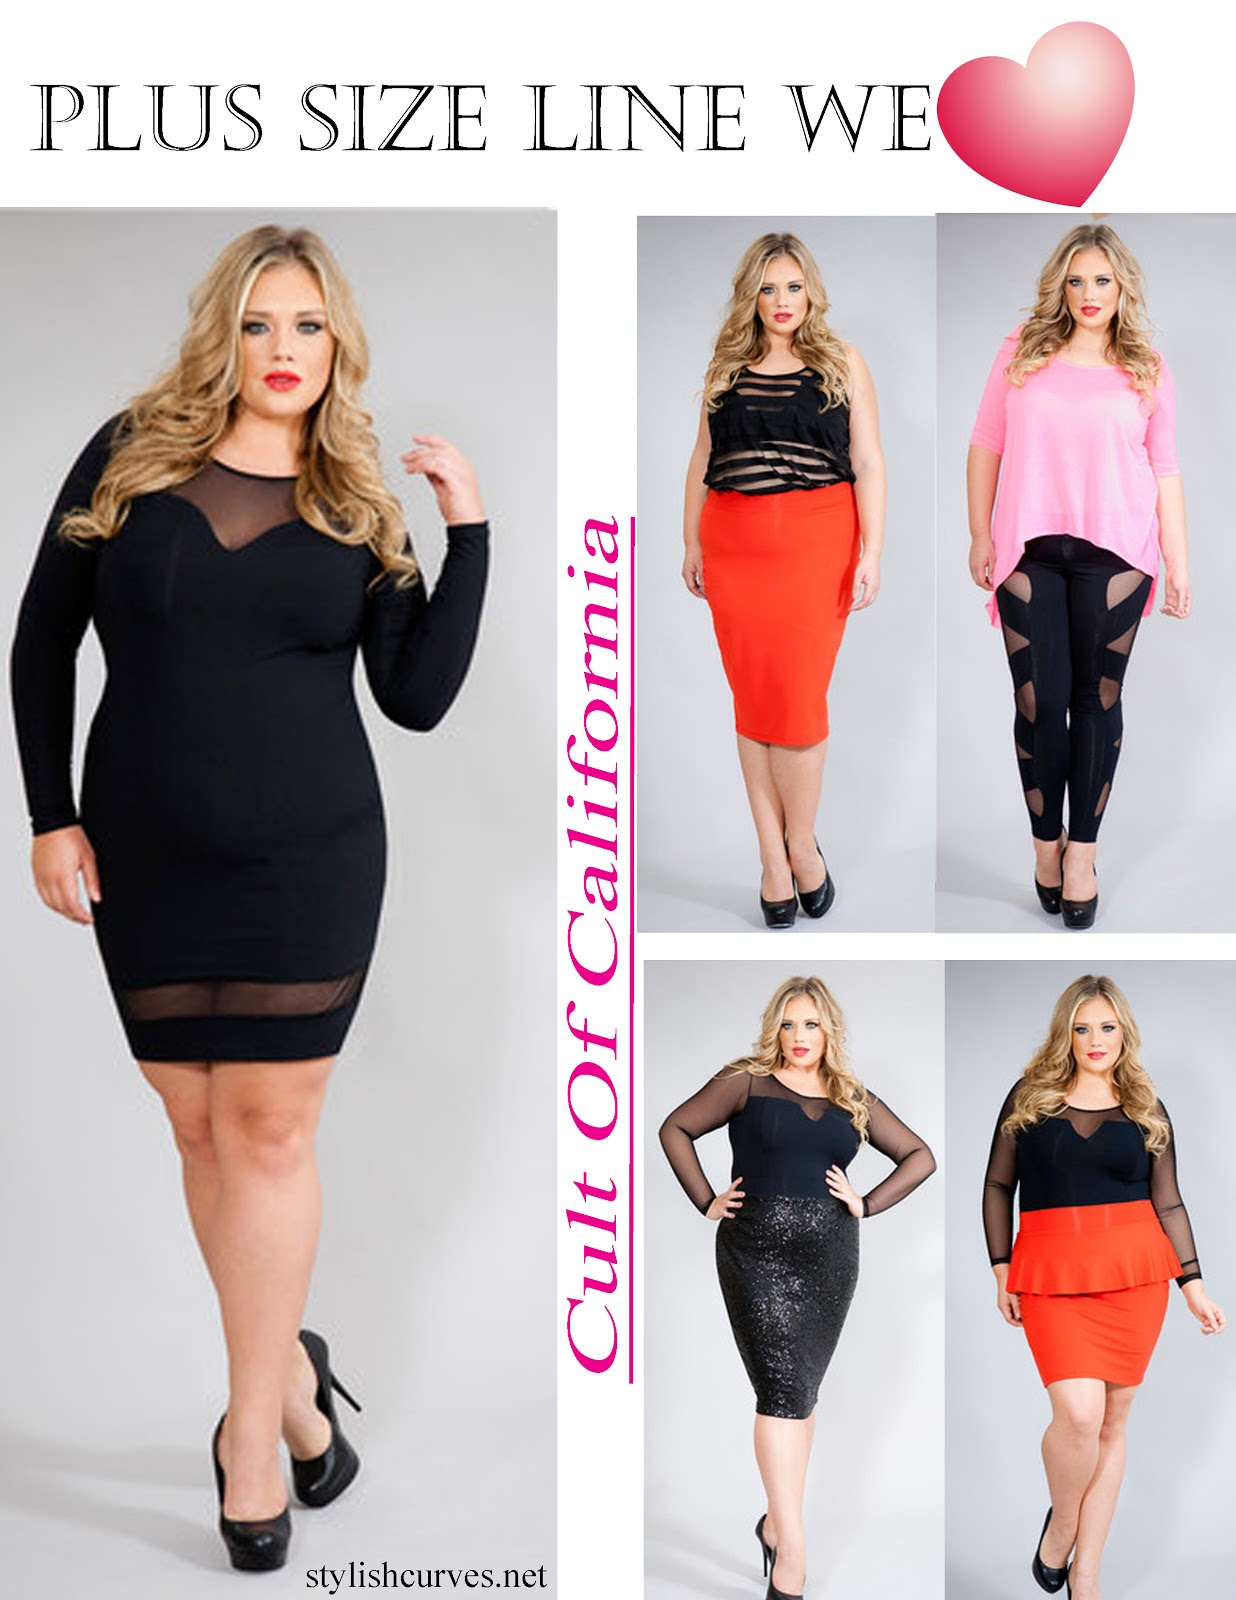 PLUS SIZE DESIGNER WE LOVE CULT OF CALIFORNIA  Stylish Curves